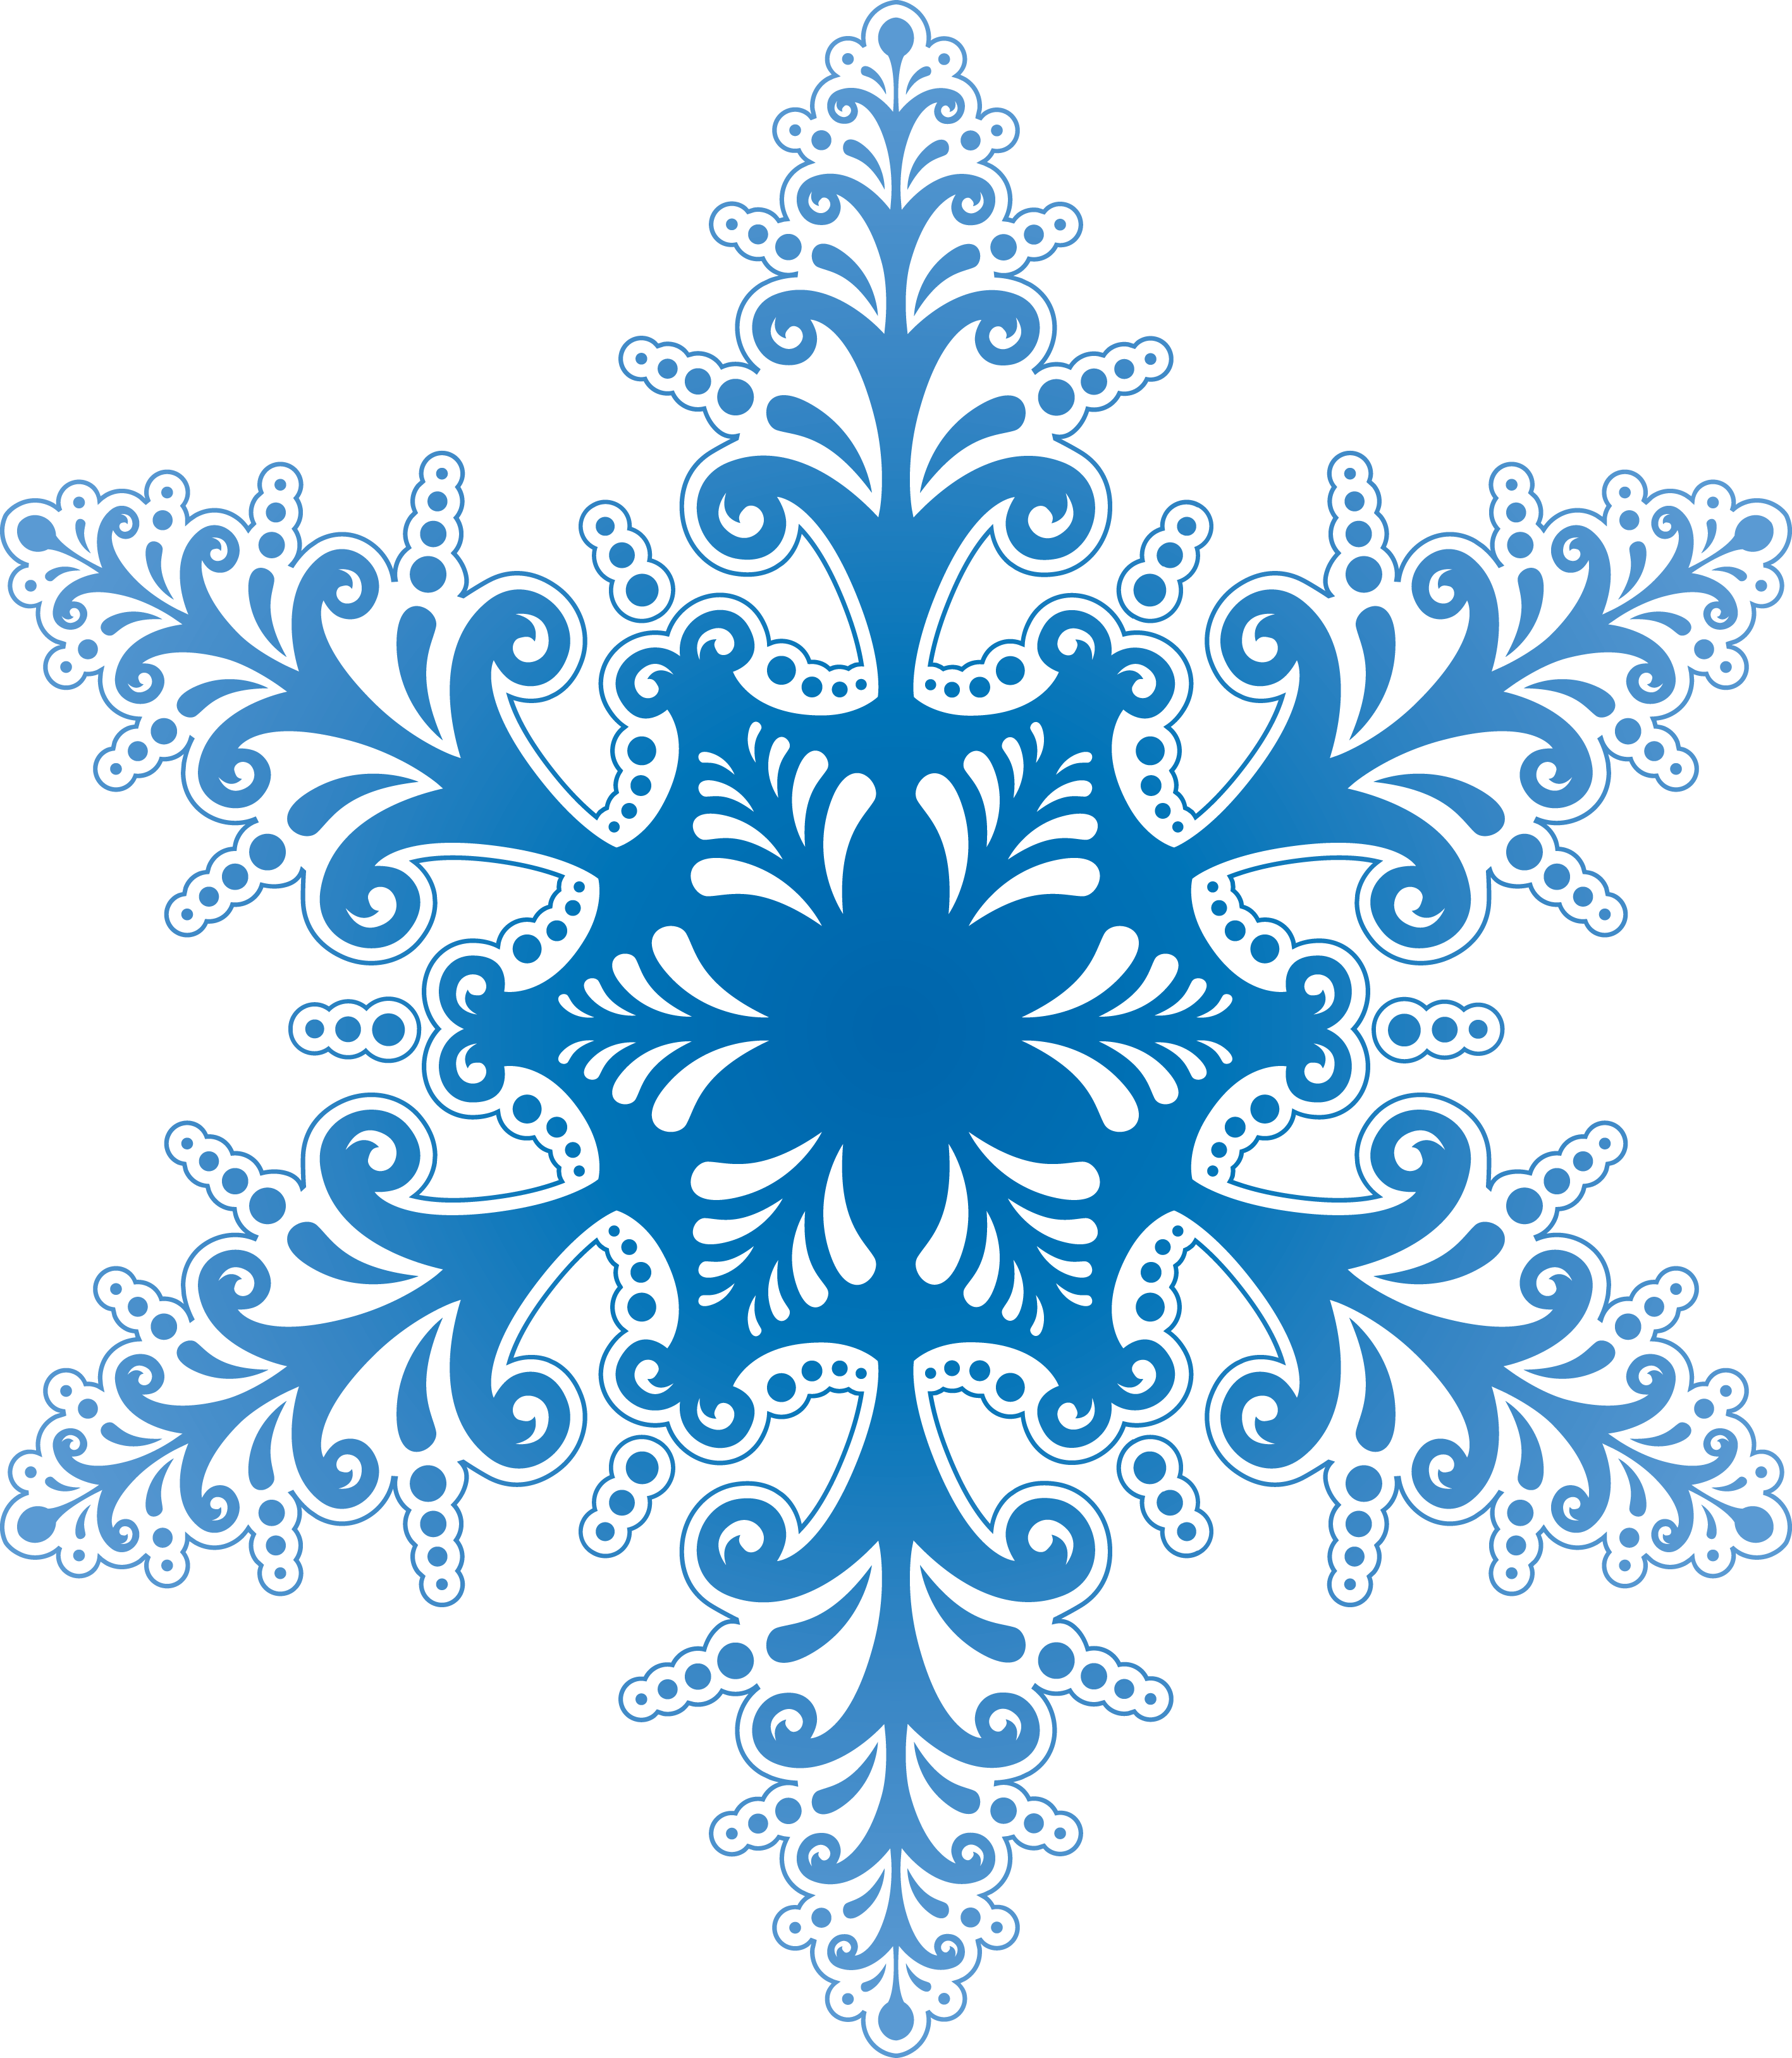 Snowflake PNG image image with transparent background